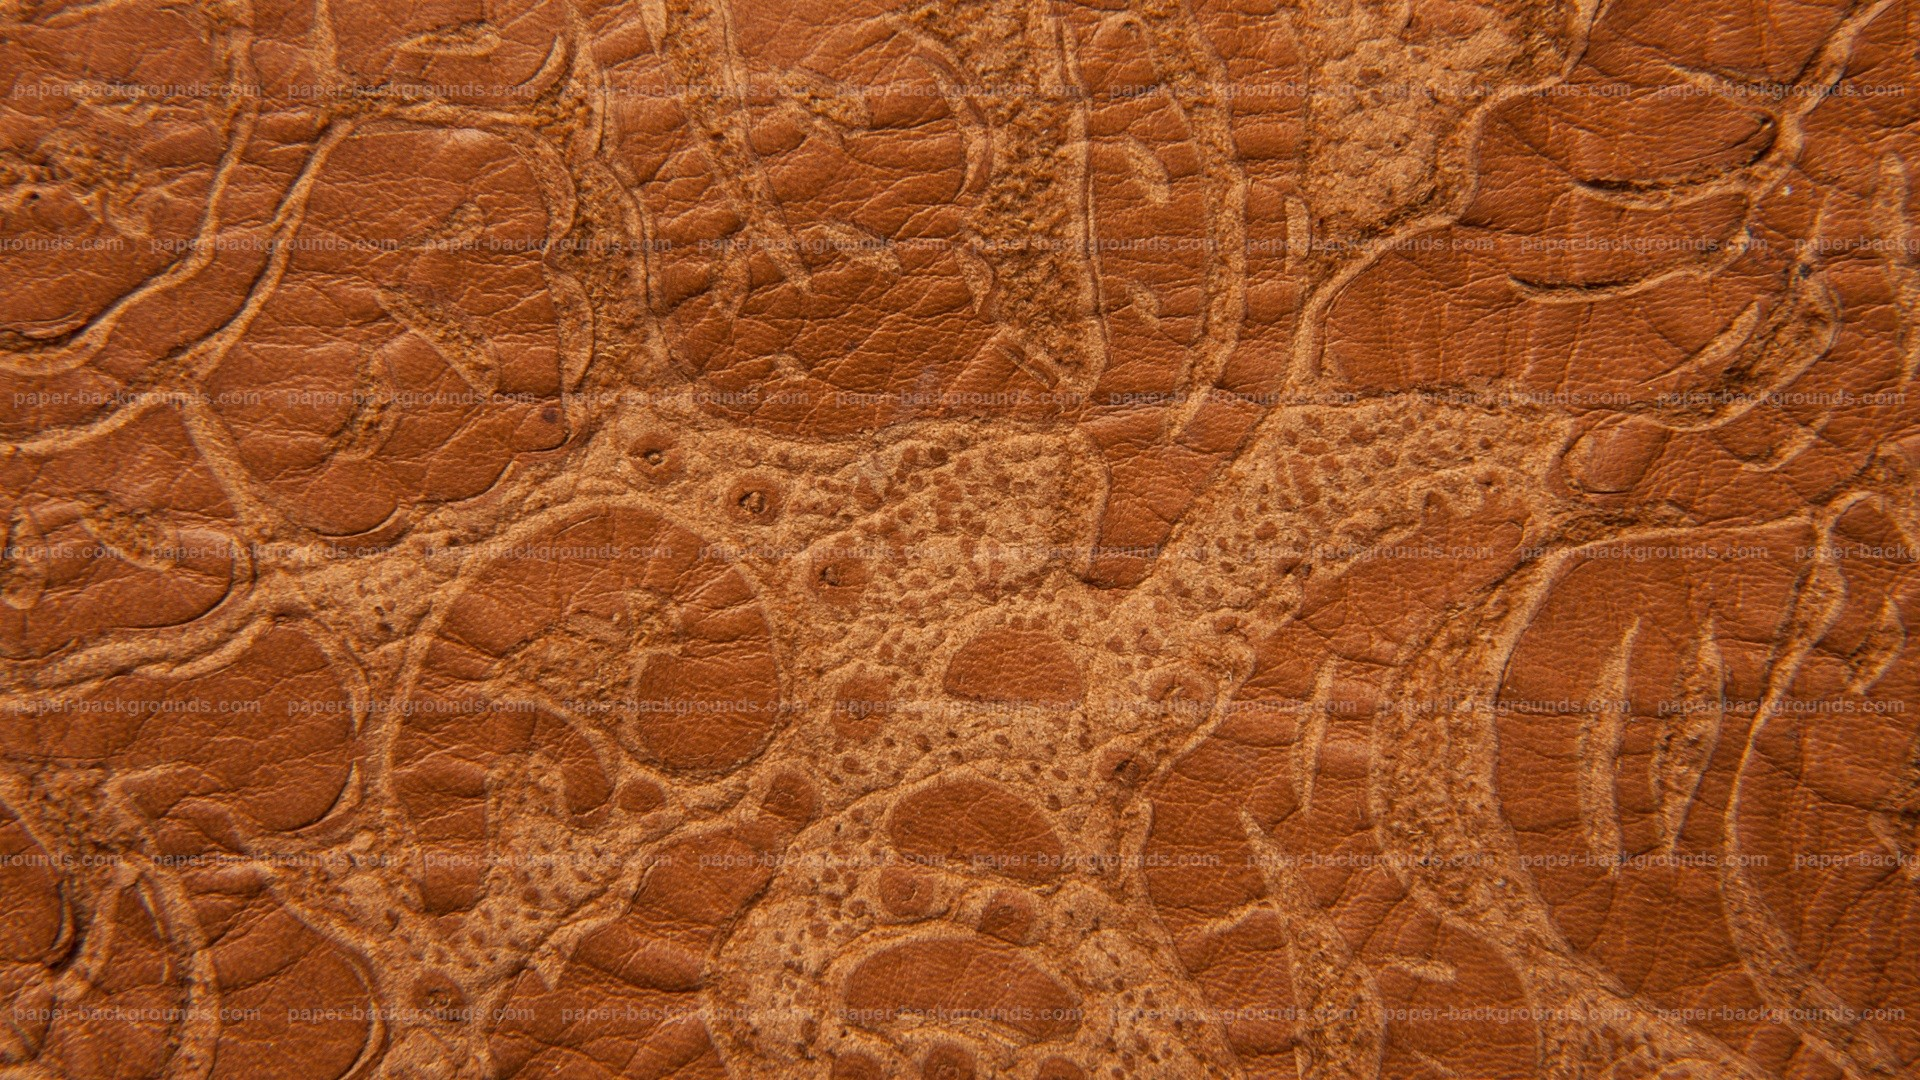 Brown Grunge Embossed Leather Texture HD 1920 x 1080p